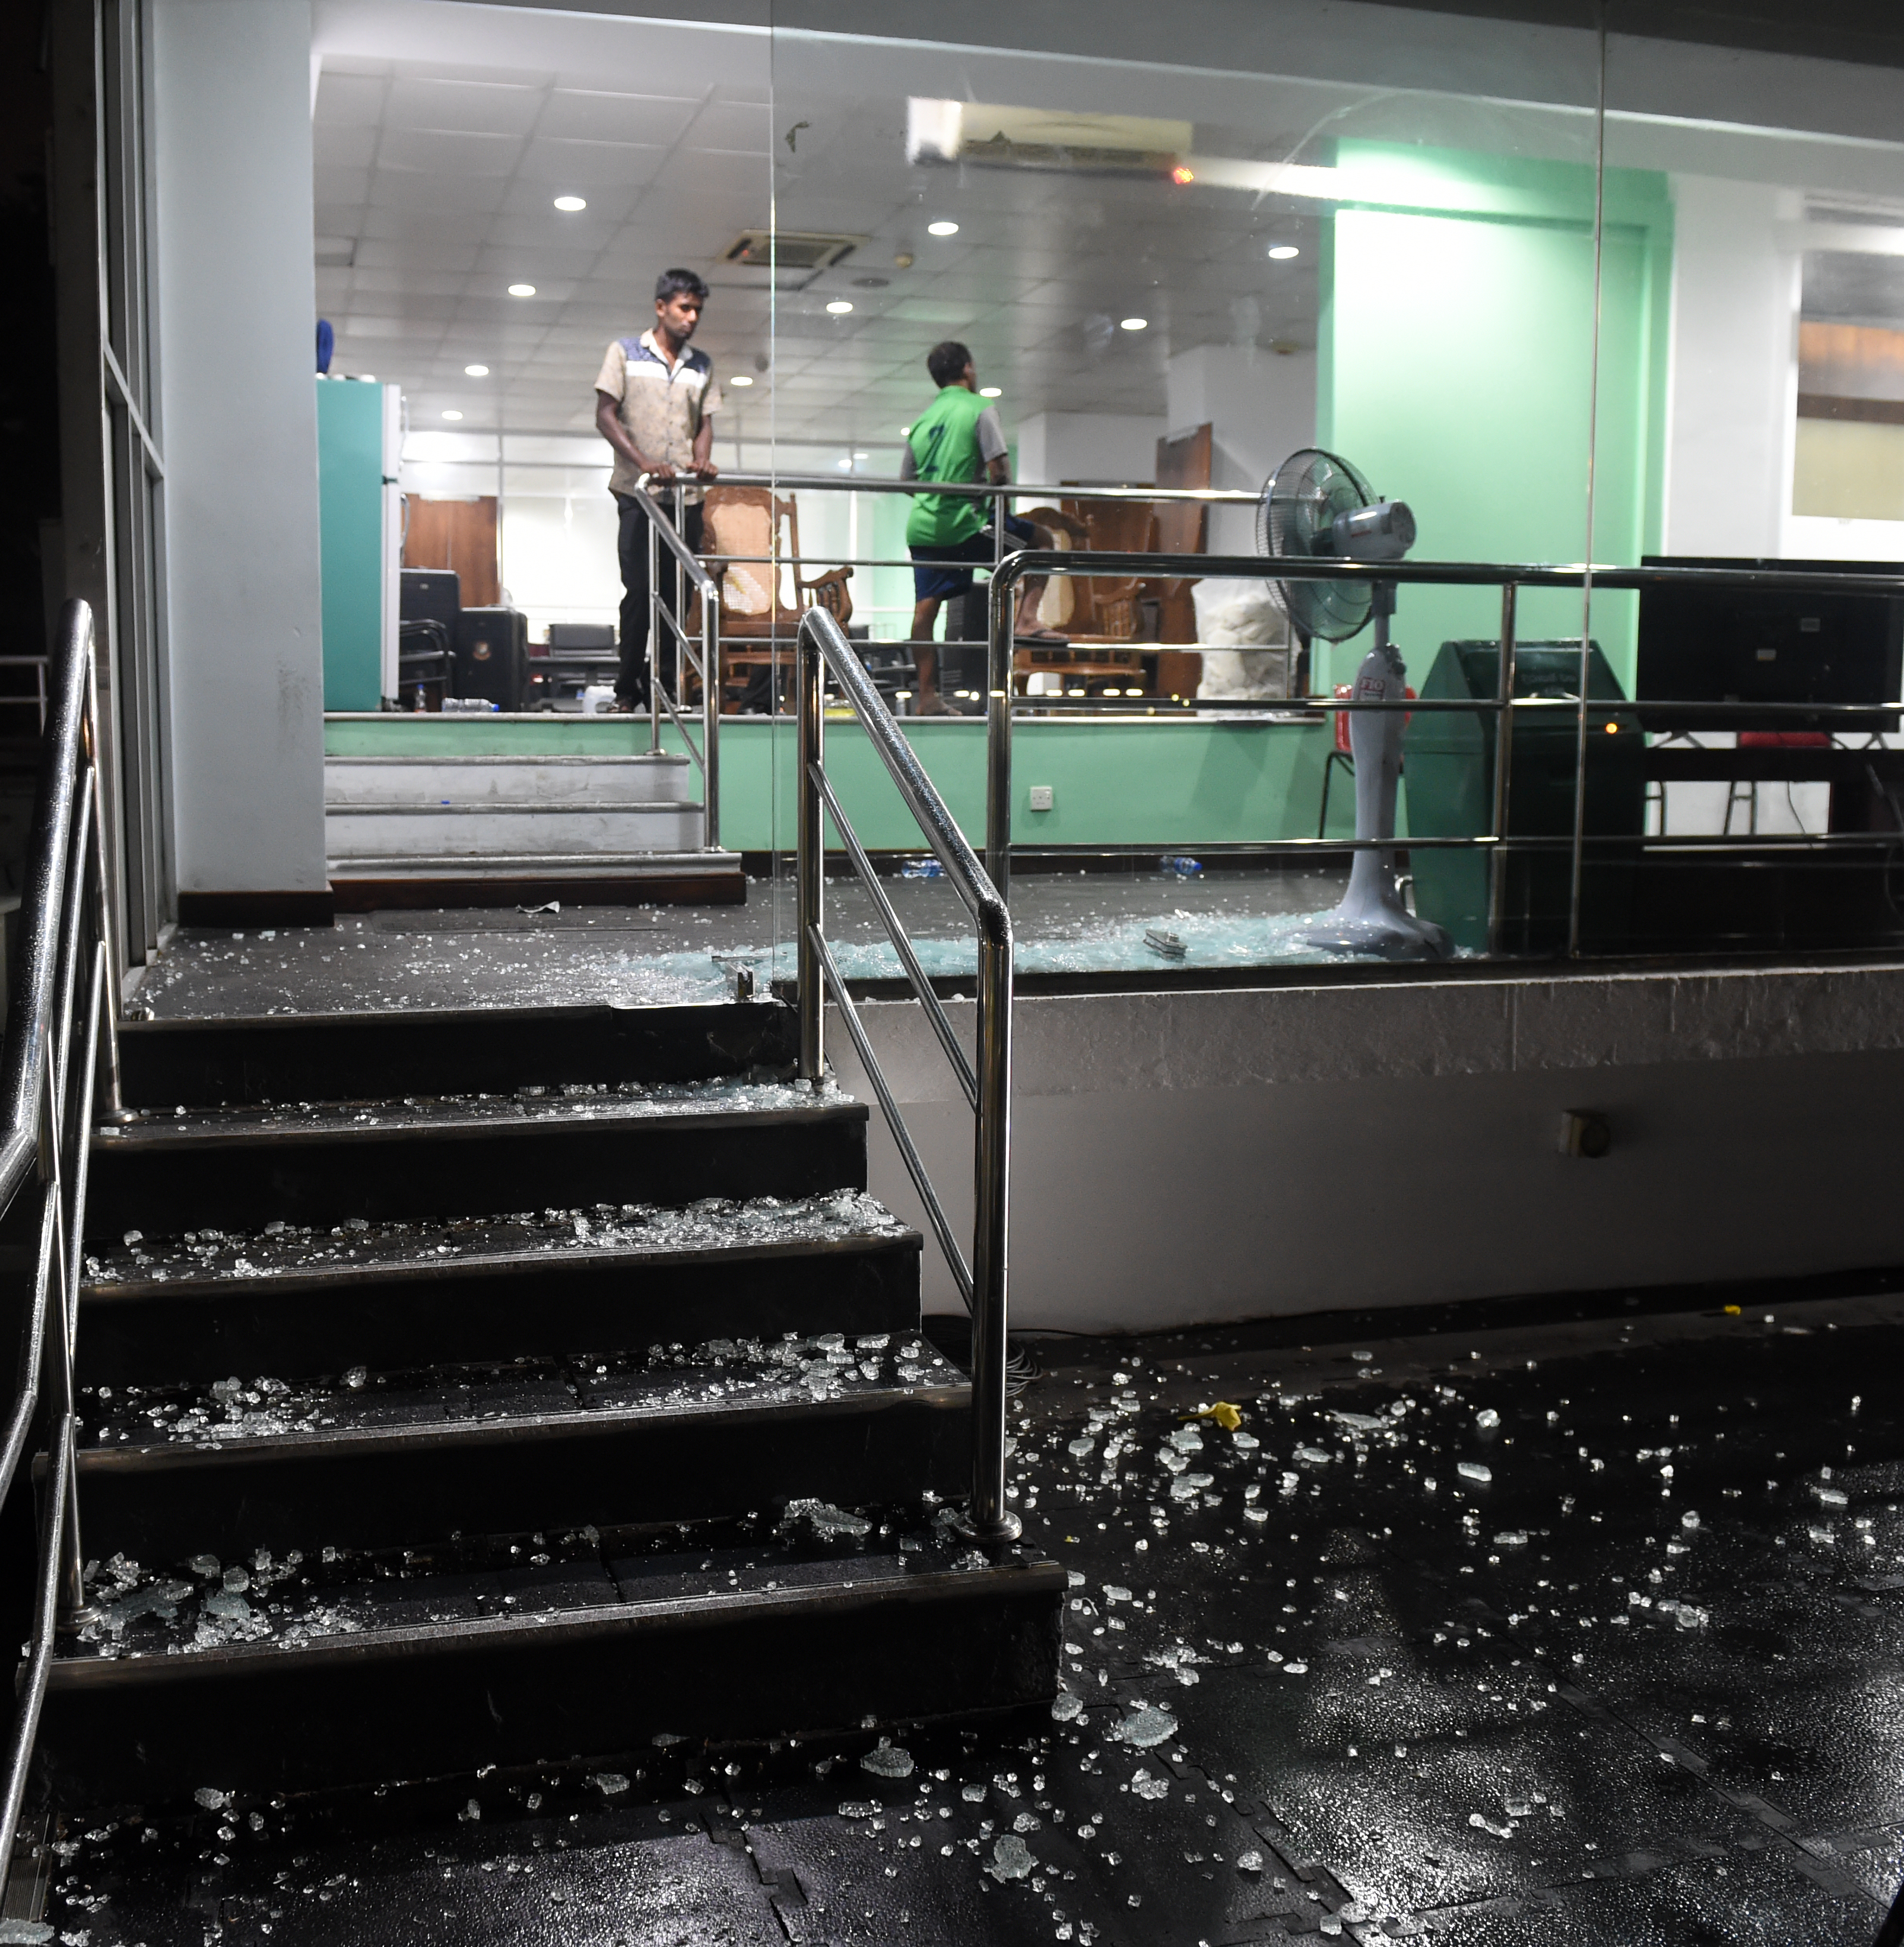 Bangladeshi players smashed the dressing room window after beating Sri Lanka and qualifying for the tri-series final in Colombo (Image: AFP)